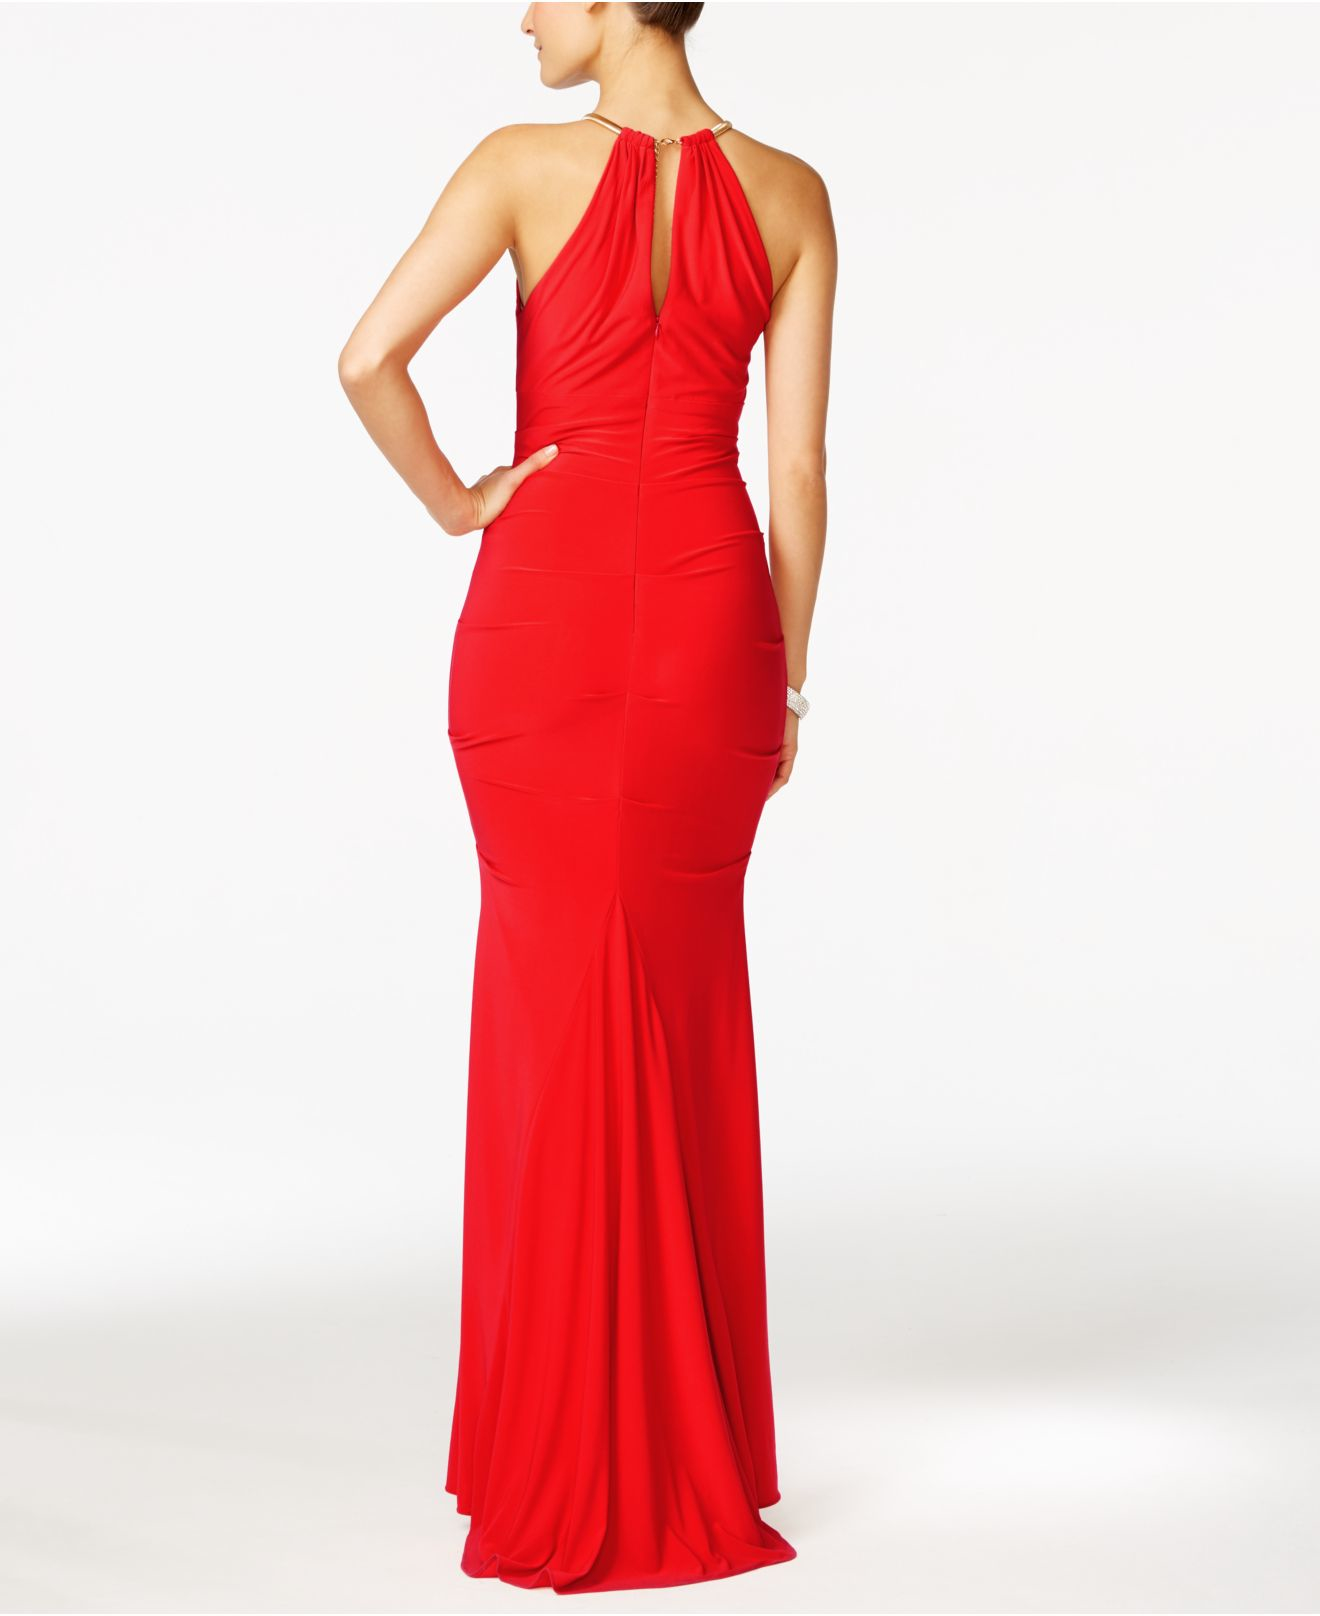 Lyst - Xscape X By Halter Gown in Red